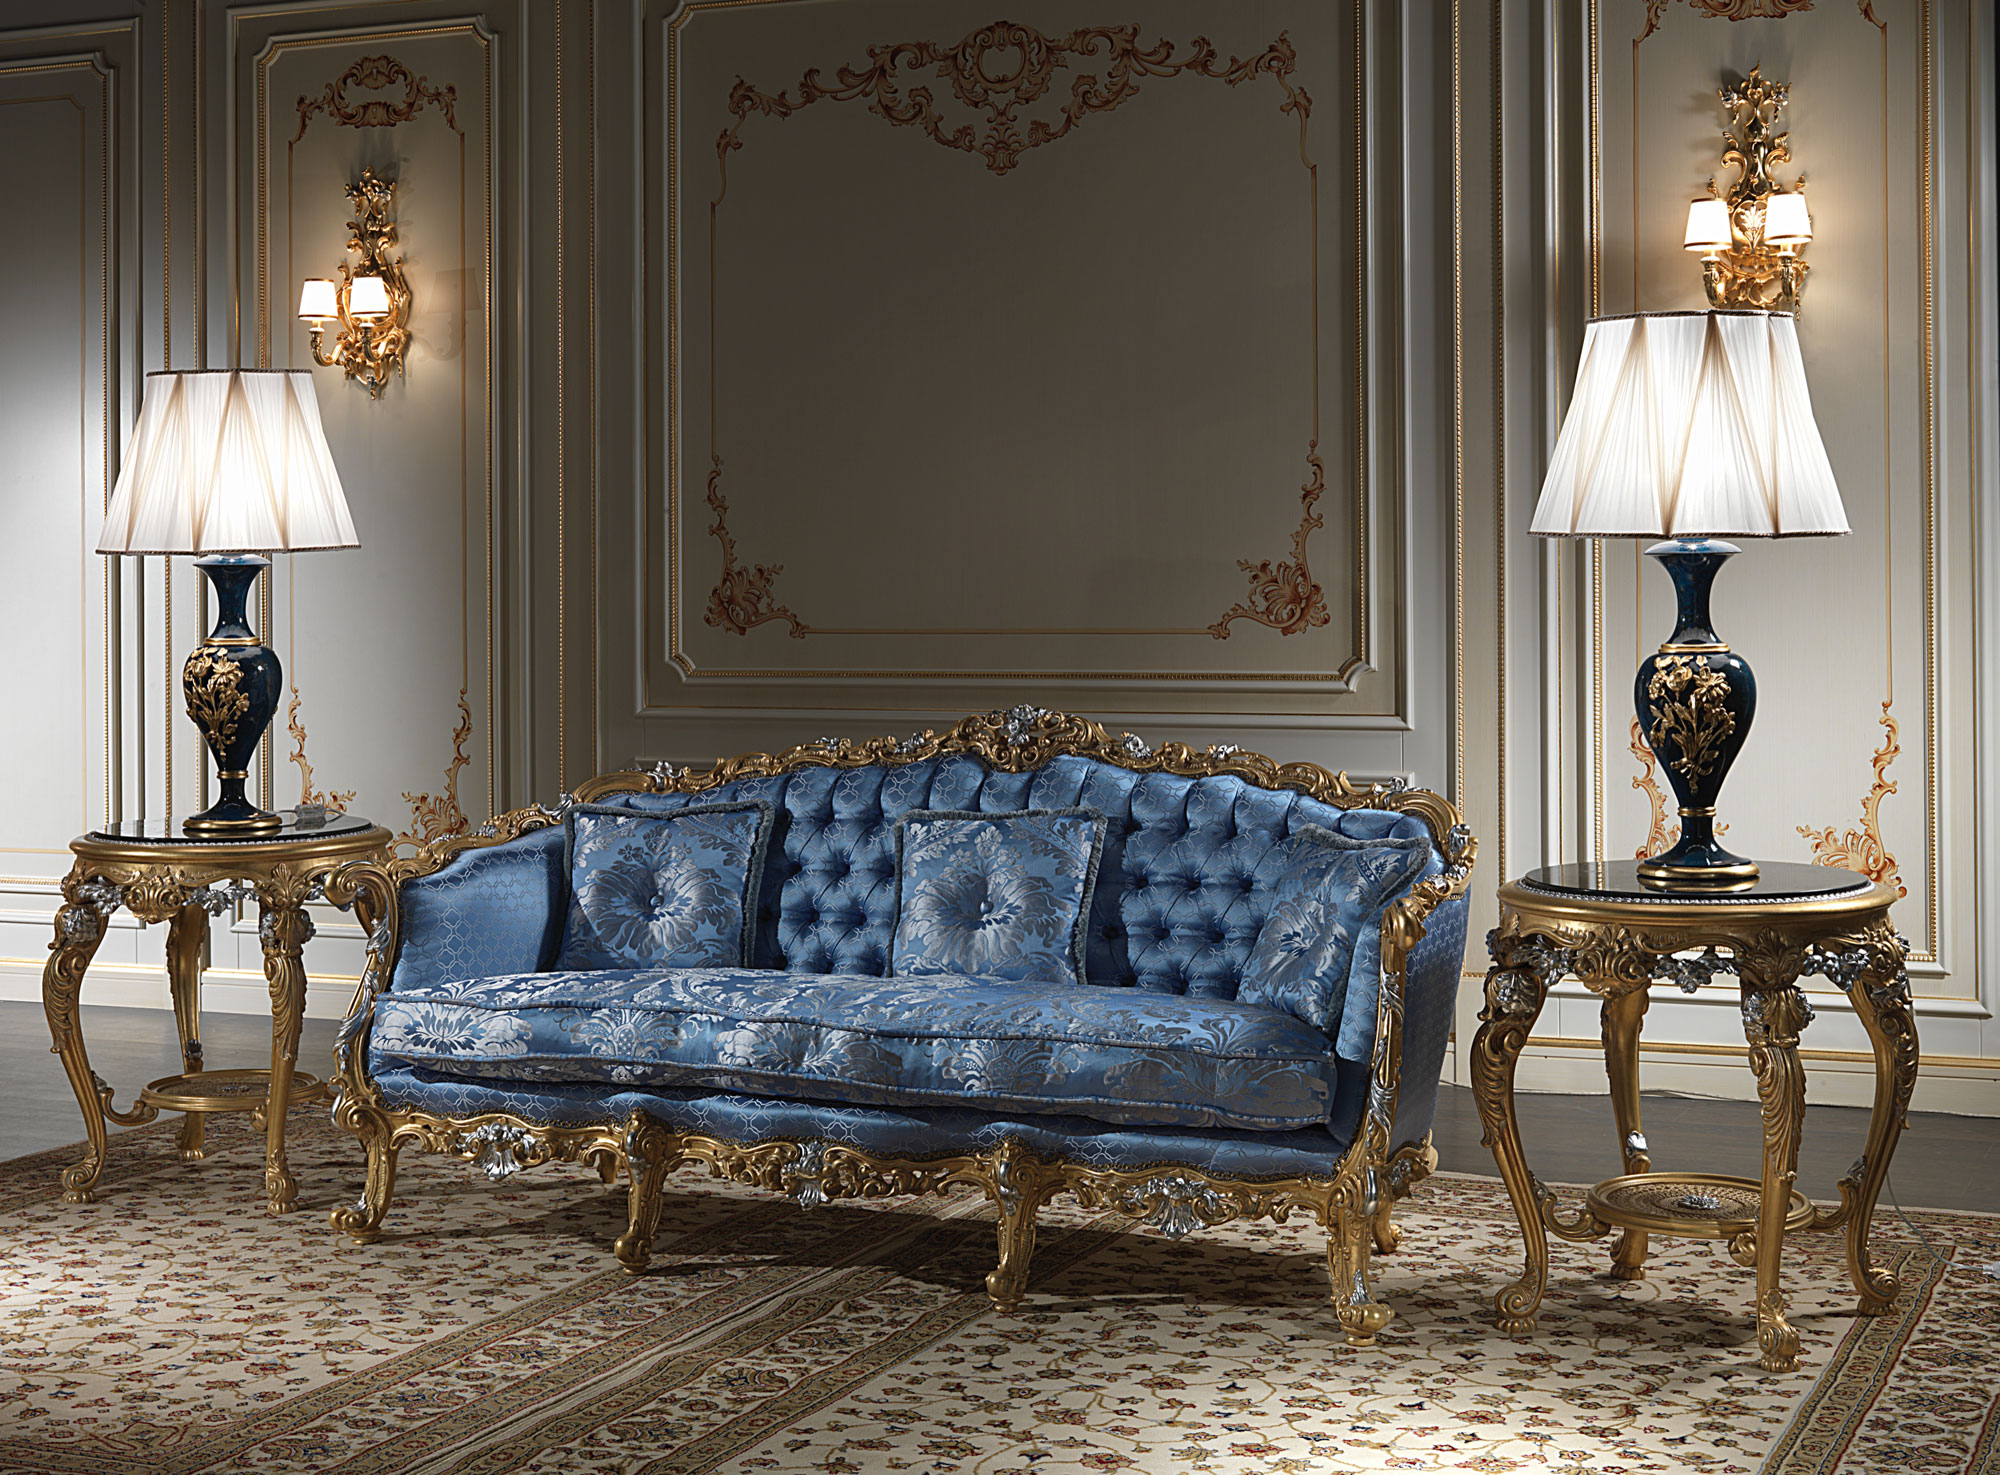 Luxury sofa living room eighteenth century se 303 for Arredamento veneziano